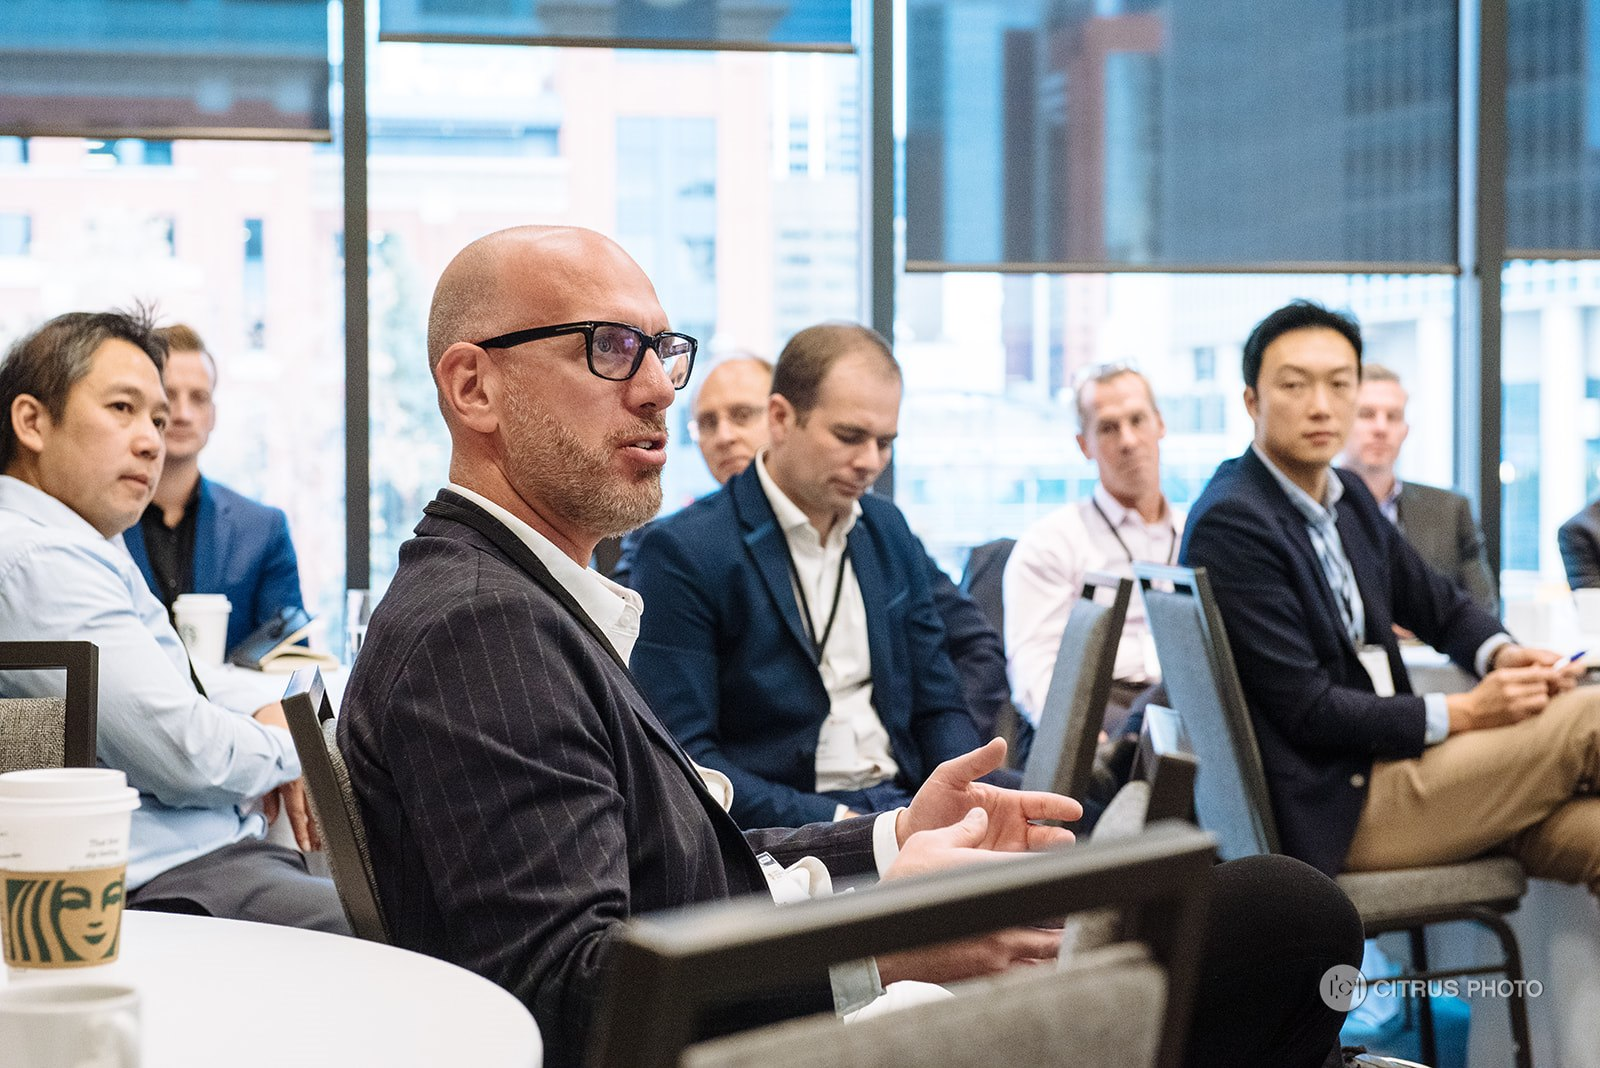 Developers and intermediaries, such as Greengate Power, Bullfrog Power, EDF Renewables, LevelTen, Samsung and others, gained insights into what buyers are looking for at the BRC Canada event